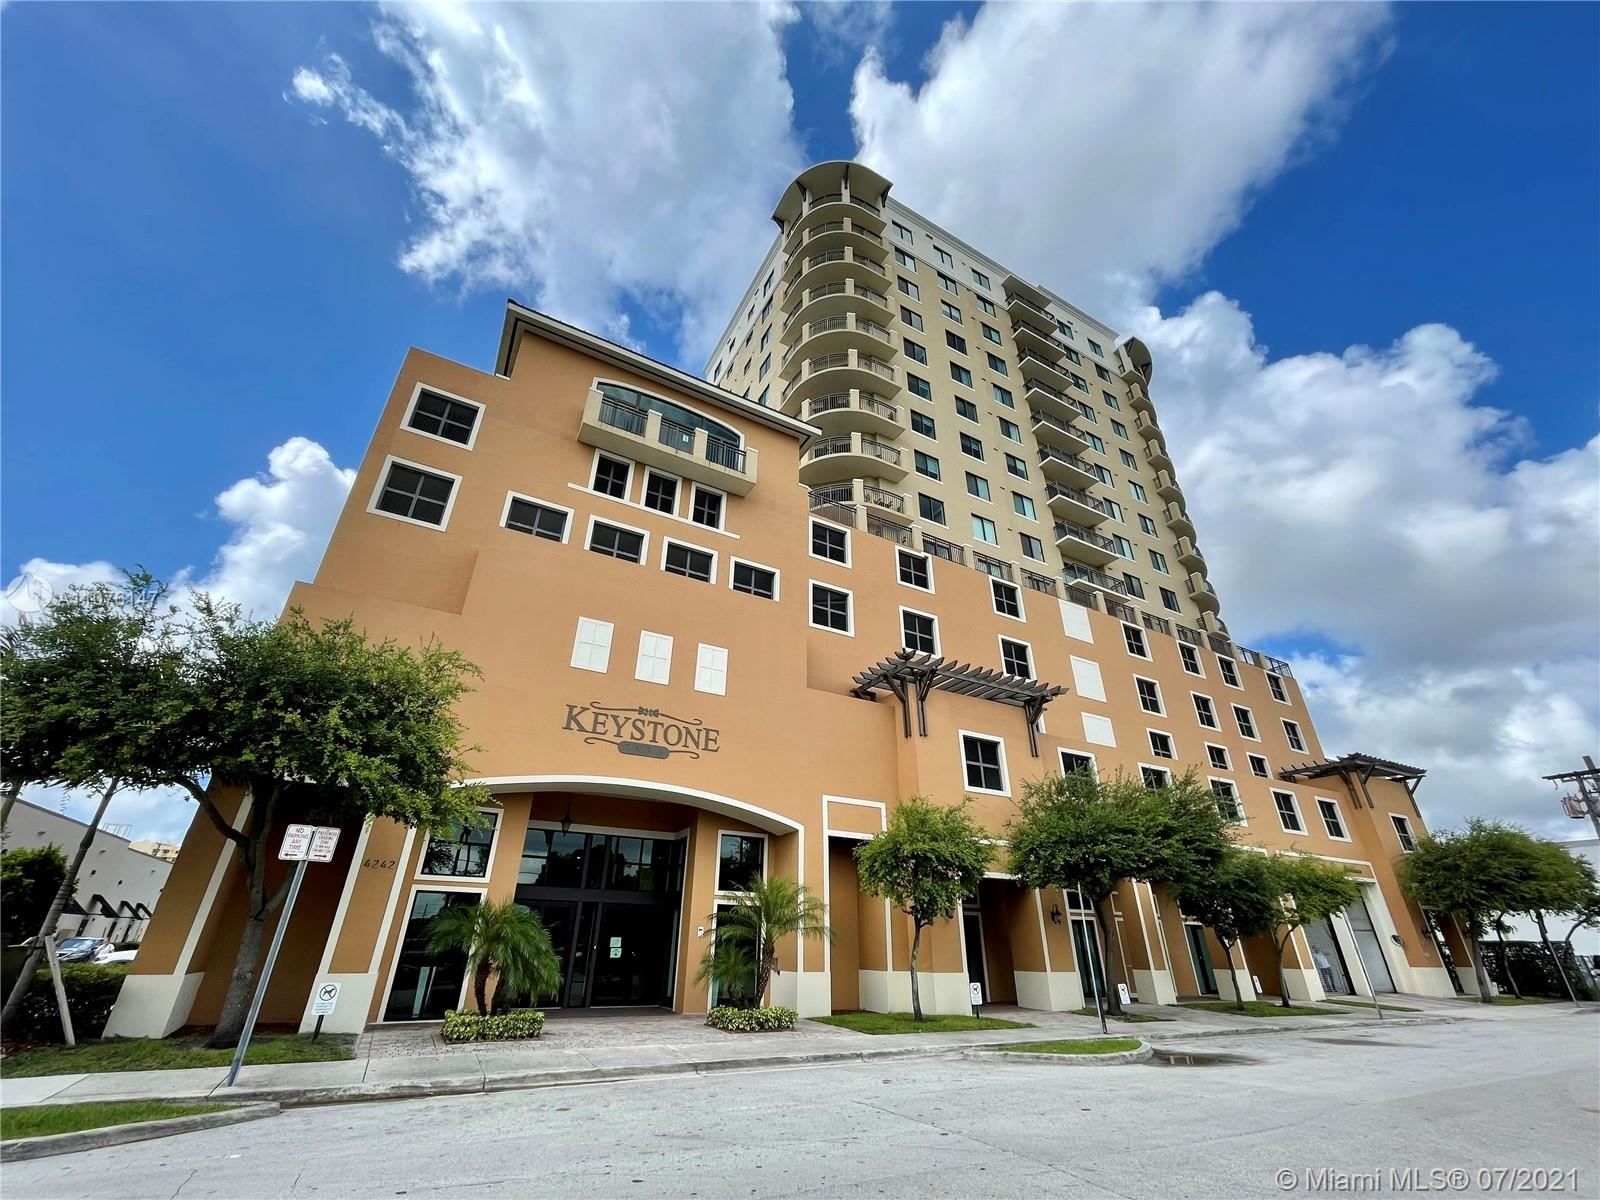 4242 NW 2nd St #1404, Miami, FL 33126 - #: A11076147